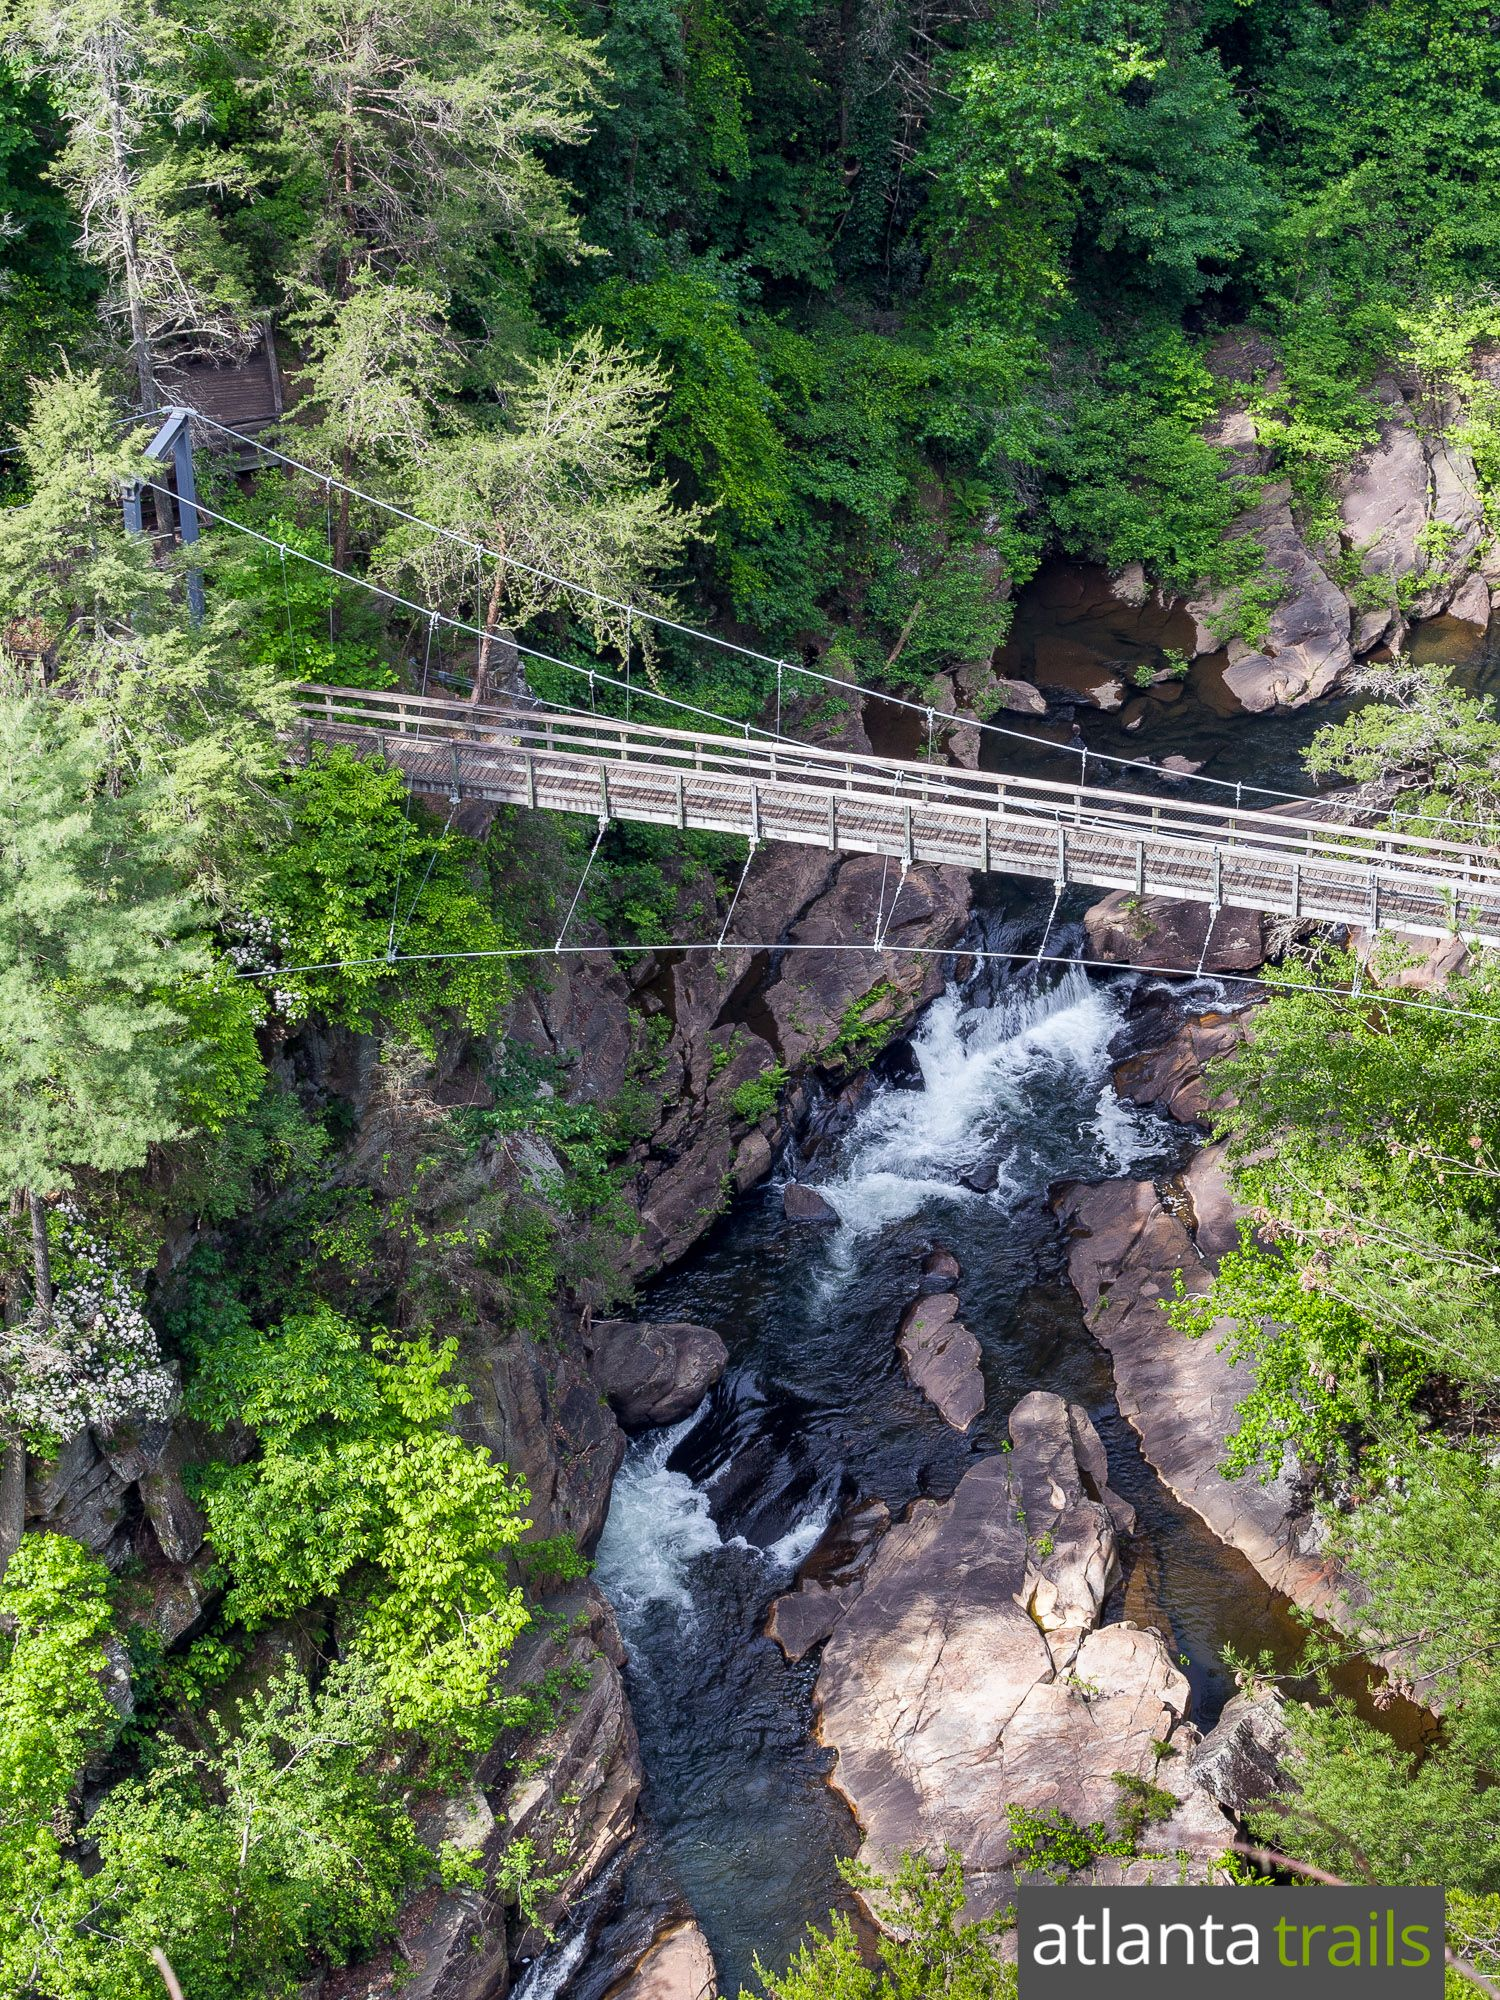 Hiking the Sliding Rock Trail at Tallulah Gorge State Park in Georgia e074155125a3d